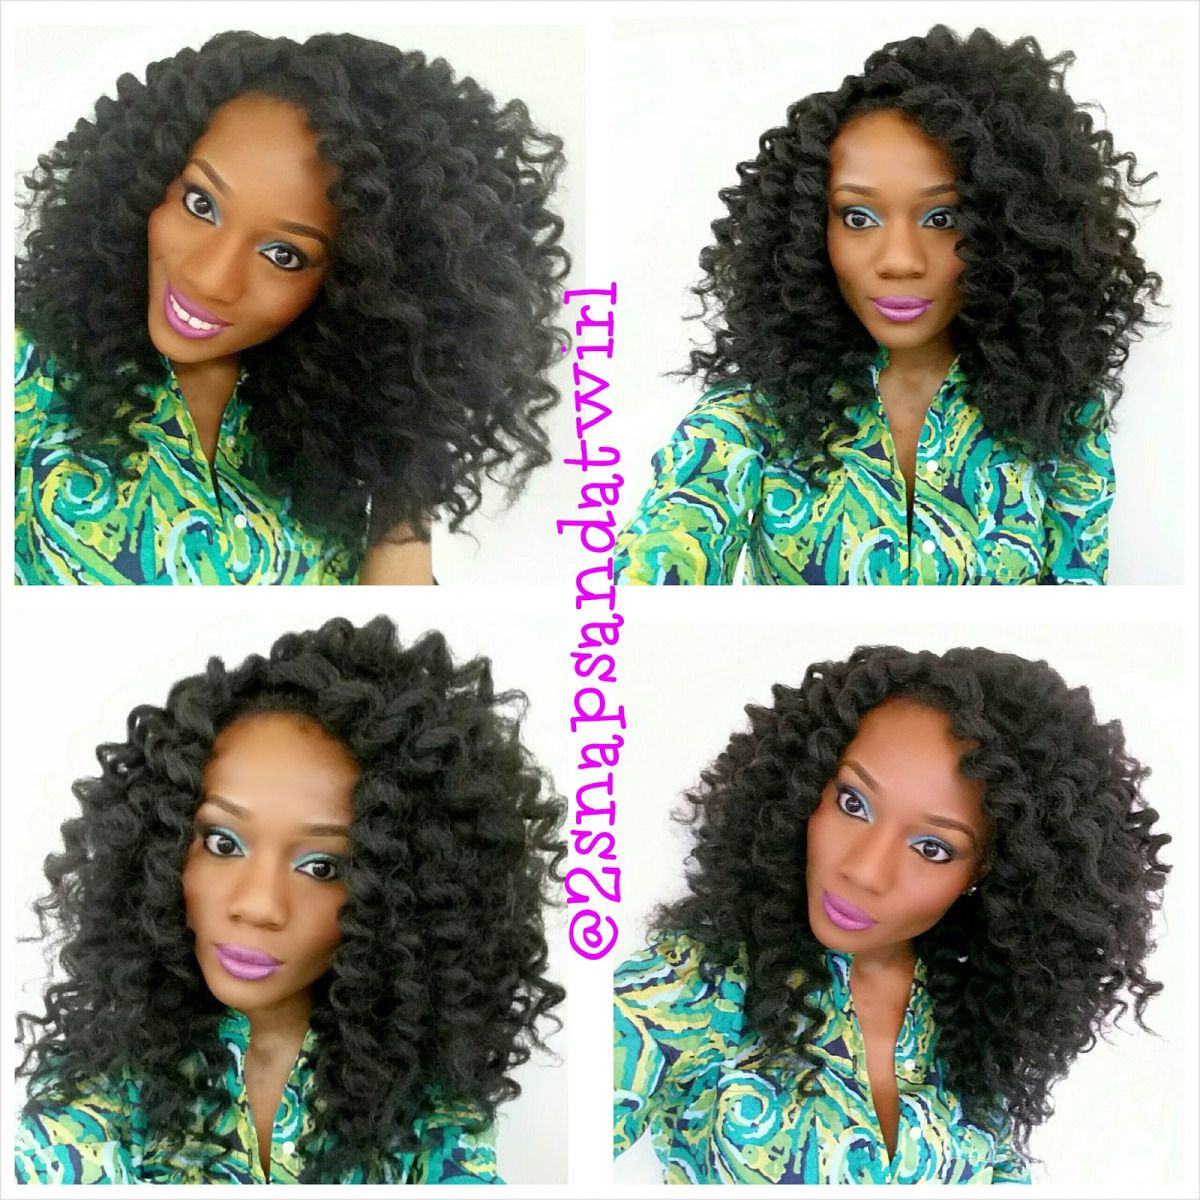 Beauty blogger ogechi snapsandatwirl rocking her crochet braid